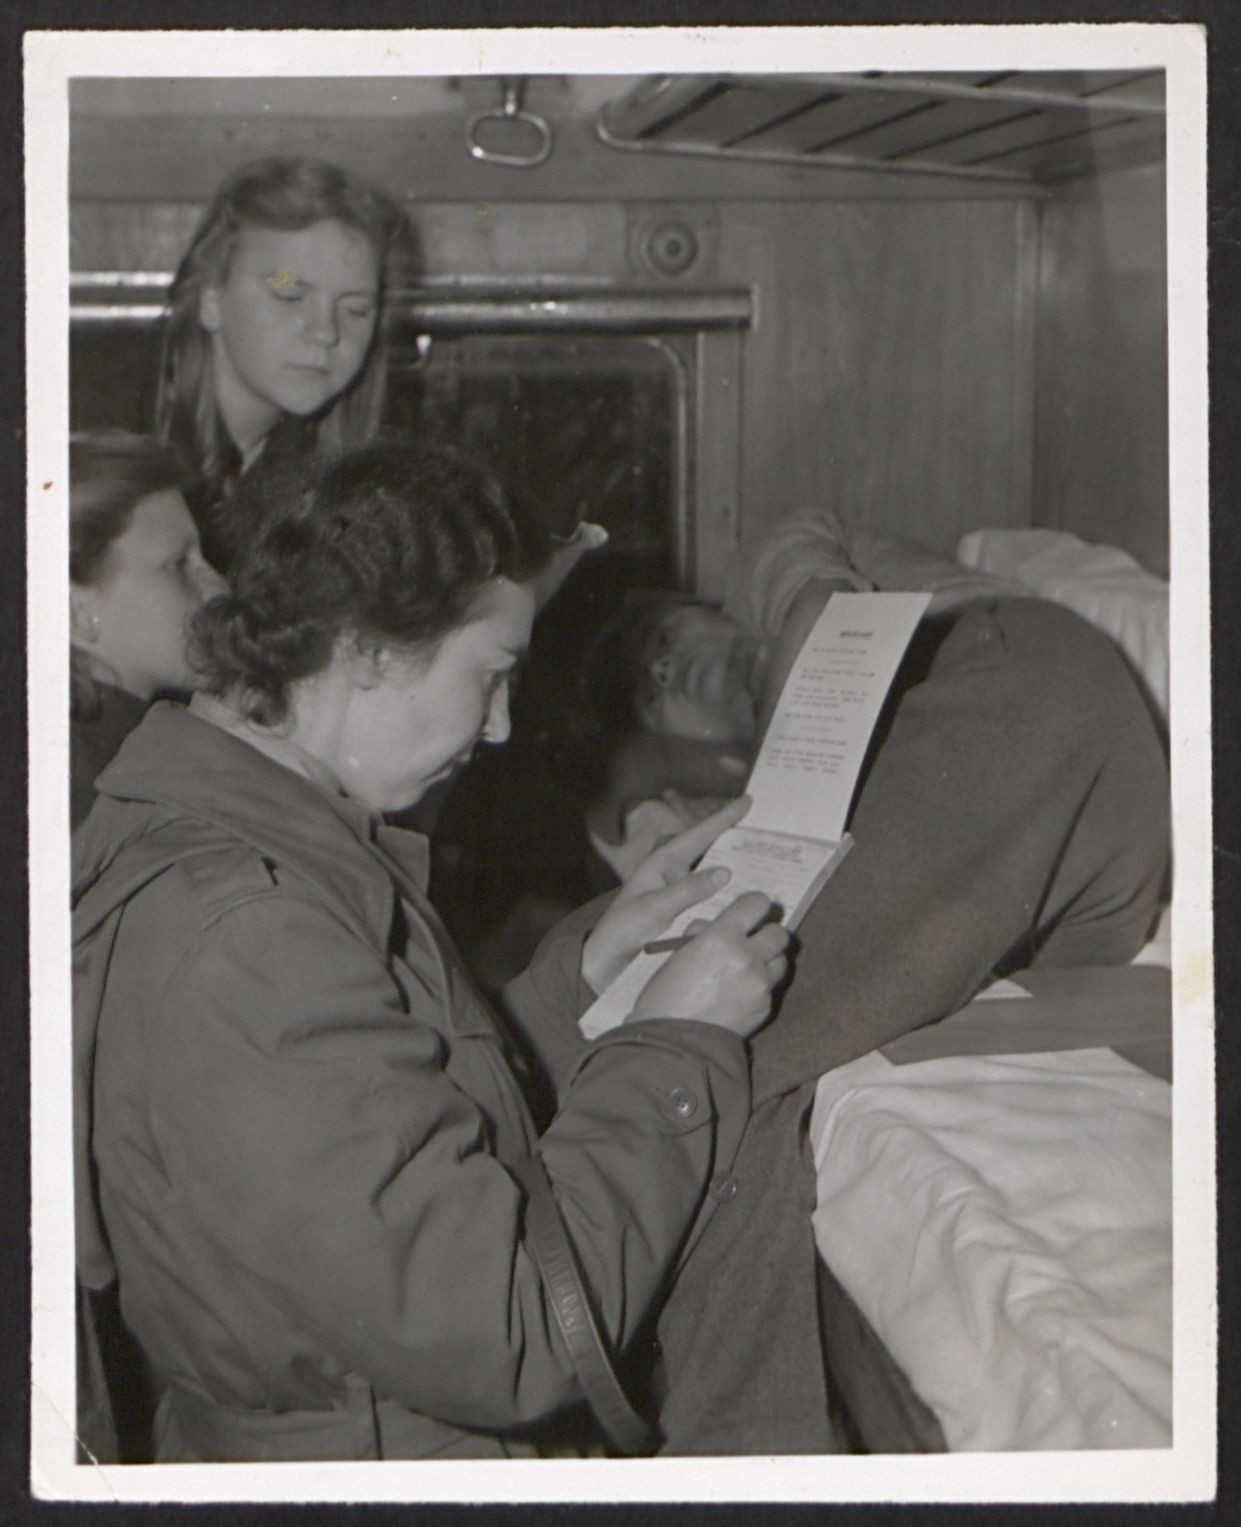 UNNRA relief worker, Greta Fischer, interviews a teenage boy, who is lying in a bunk on a Red Cross train.